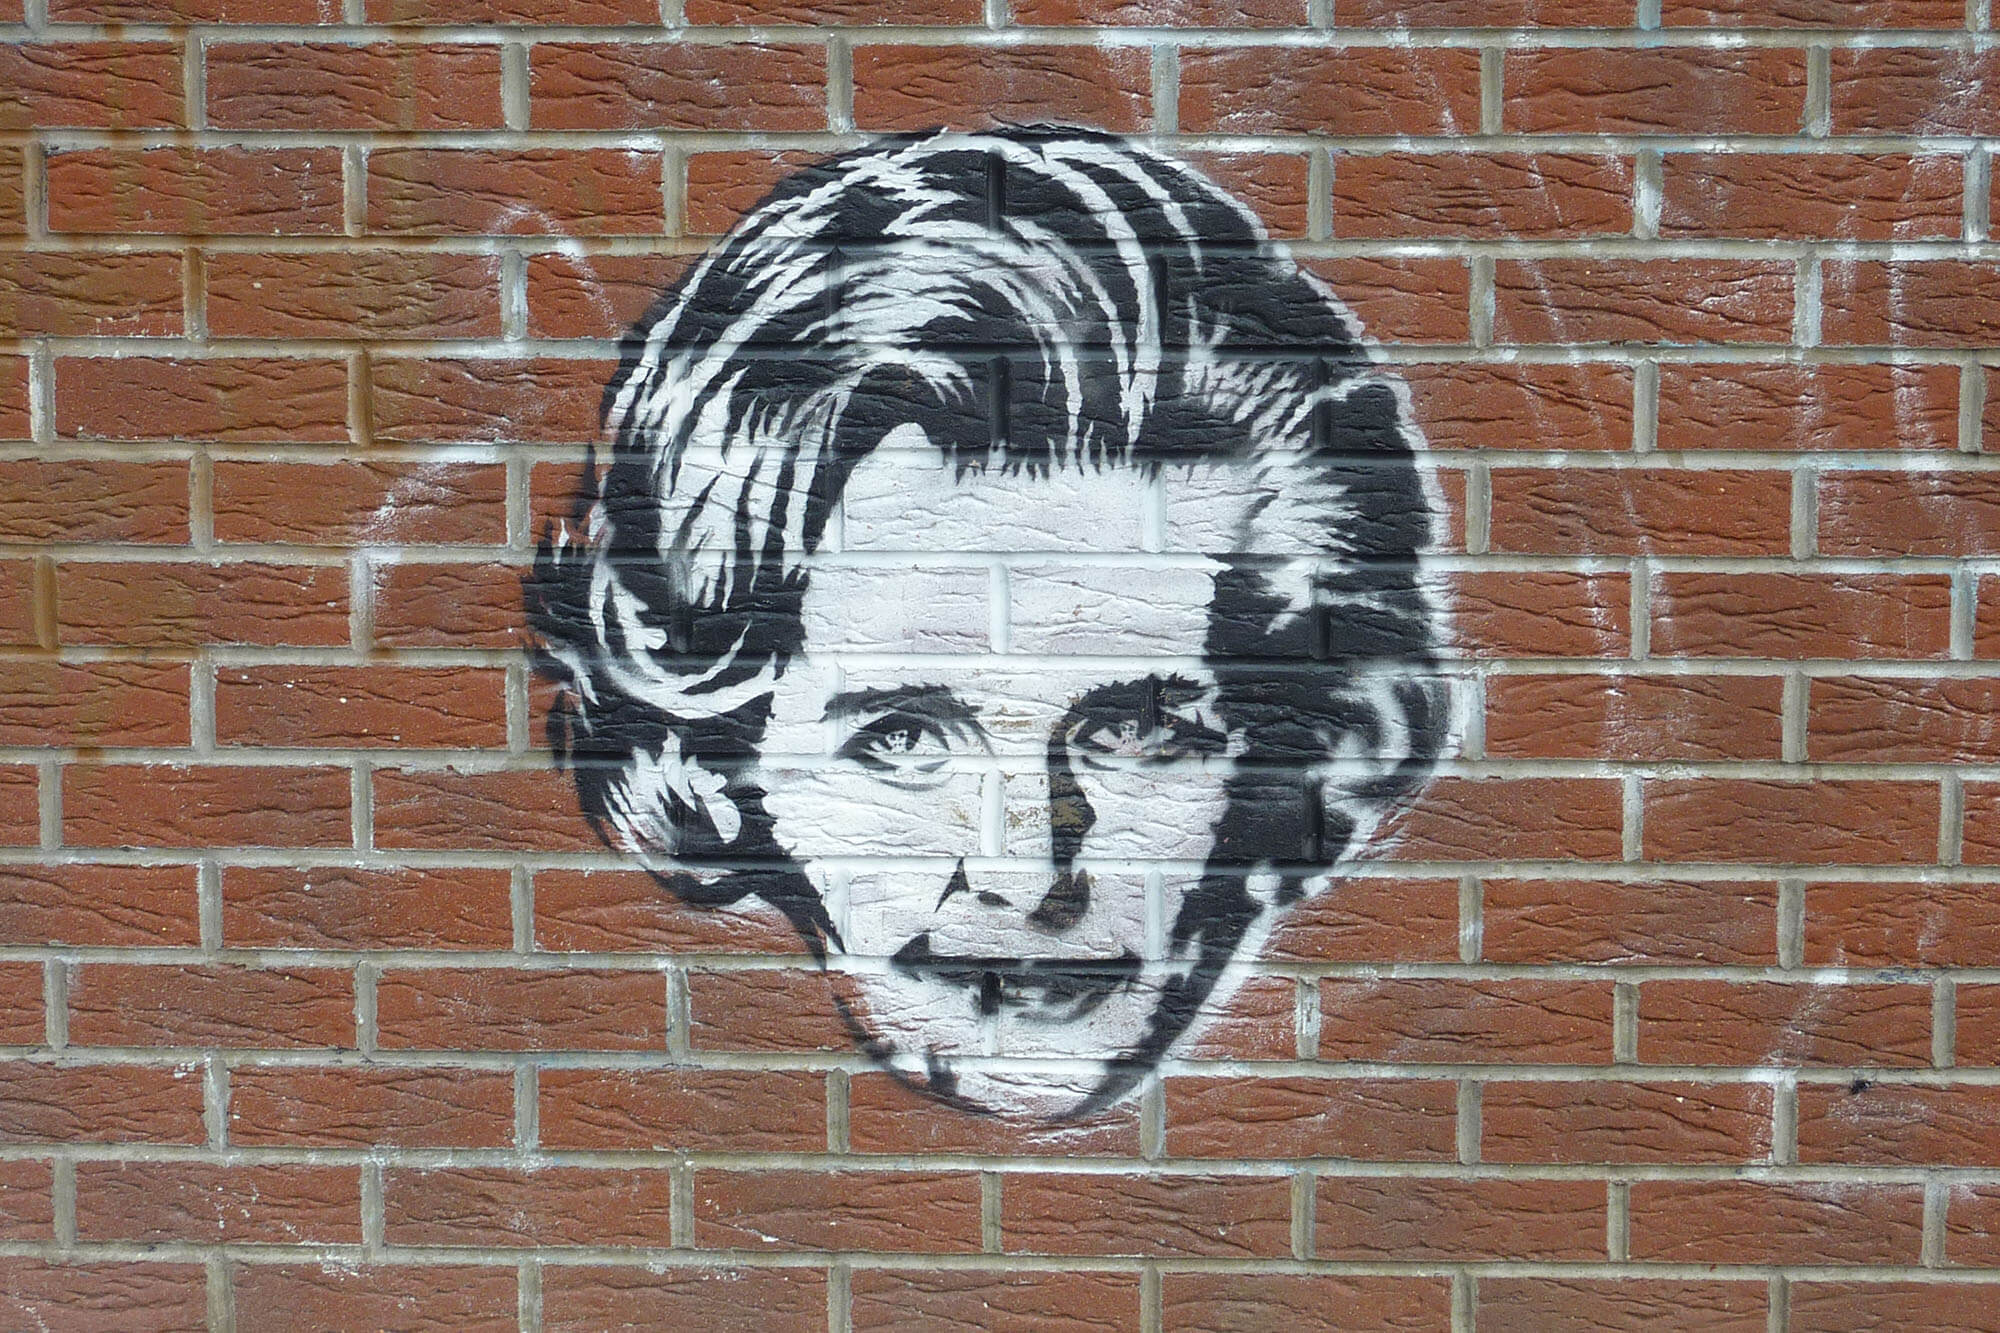 Graffiti of Margaret Thatcher's head on a wall.